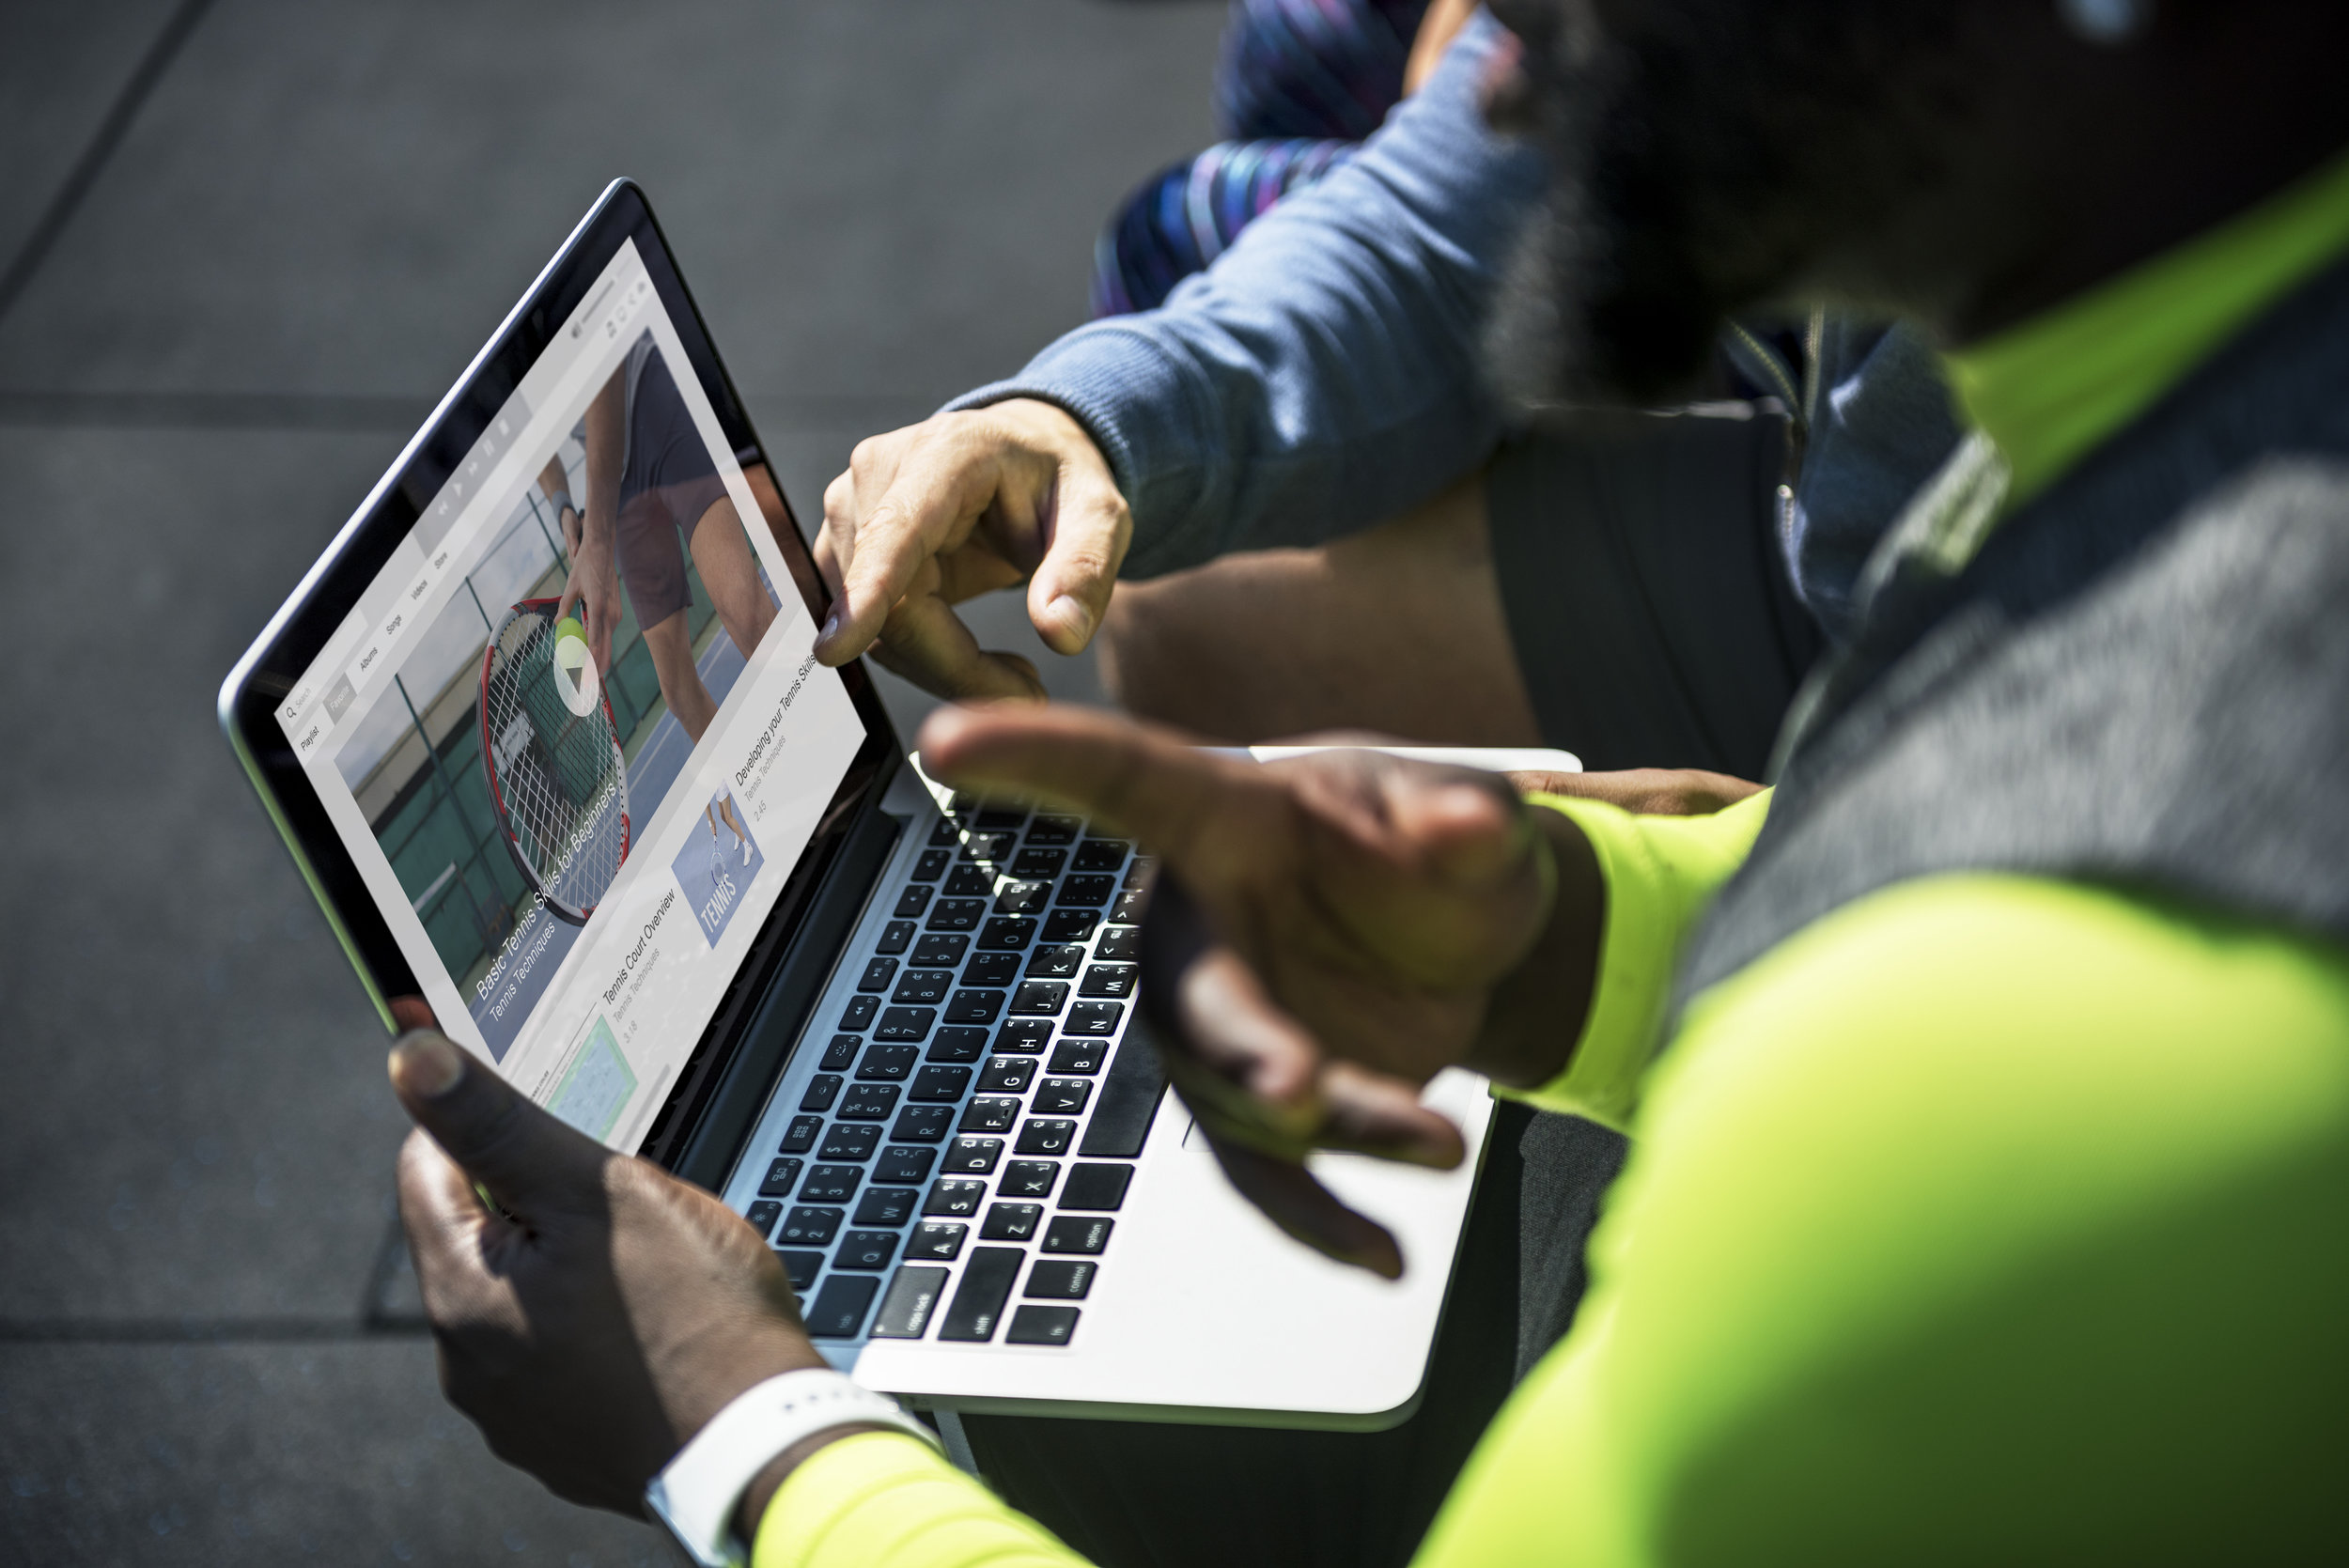 Video is the #1 content type consumed online - Video needs to be a key element of any communications strategy campaign.